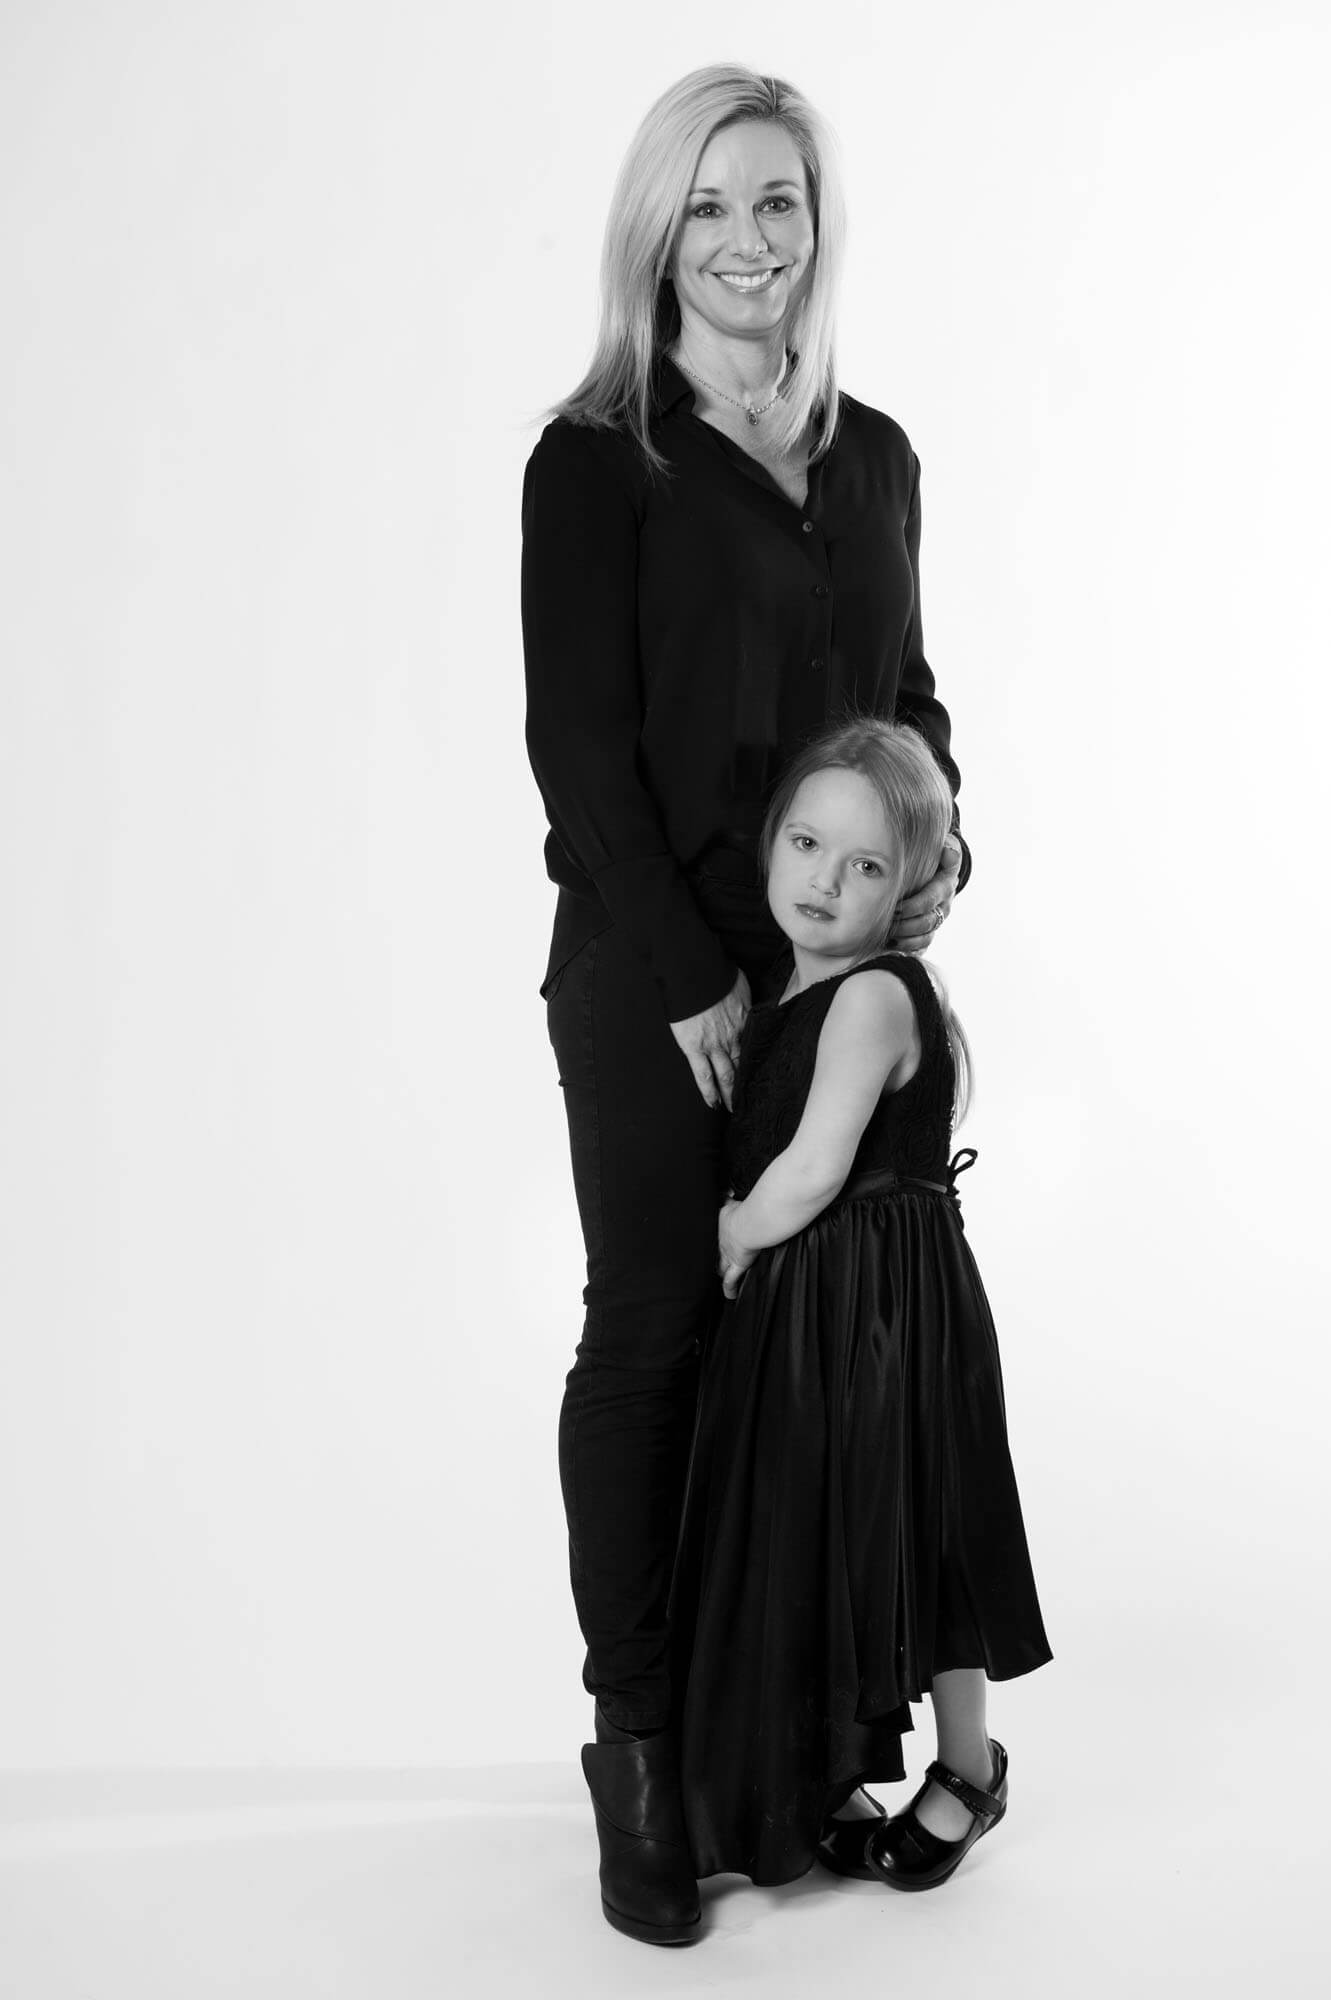 black and white portrait of a mom and daughter